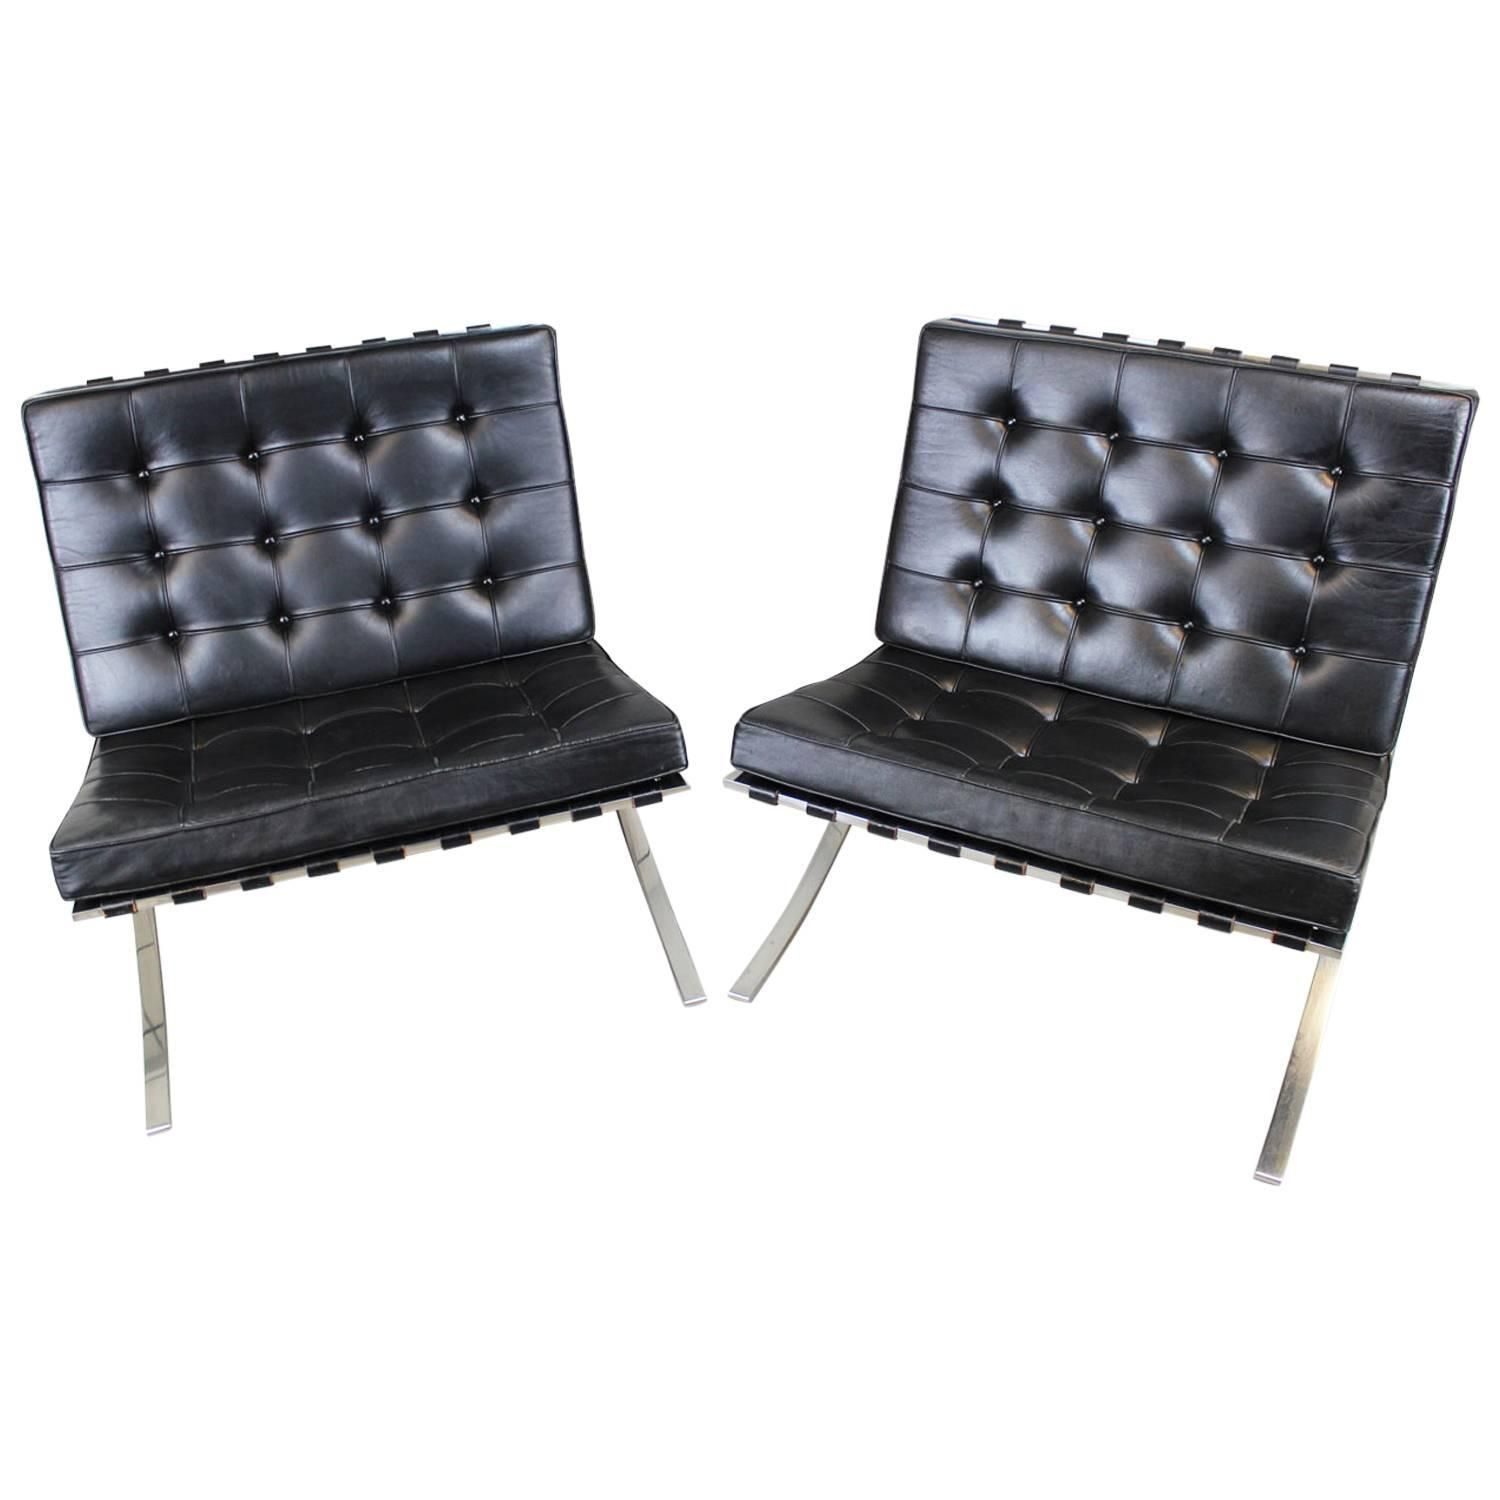 Barcelona Chairs For Sale Mies Van Der Rohe Barcelona Chairs Pair For Knoll My 1stdibs